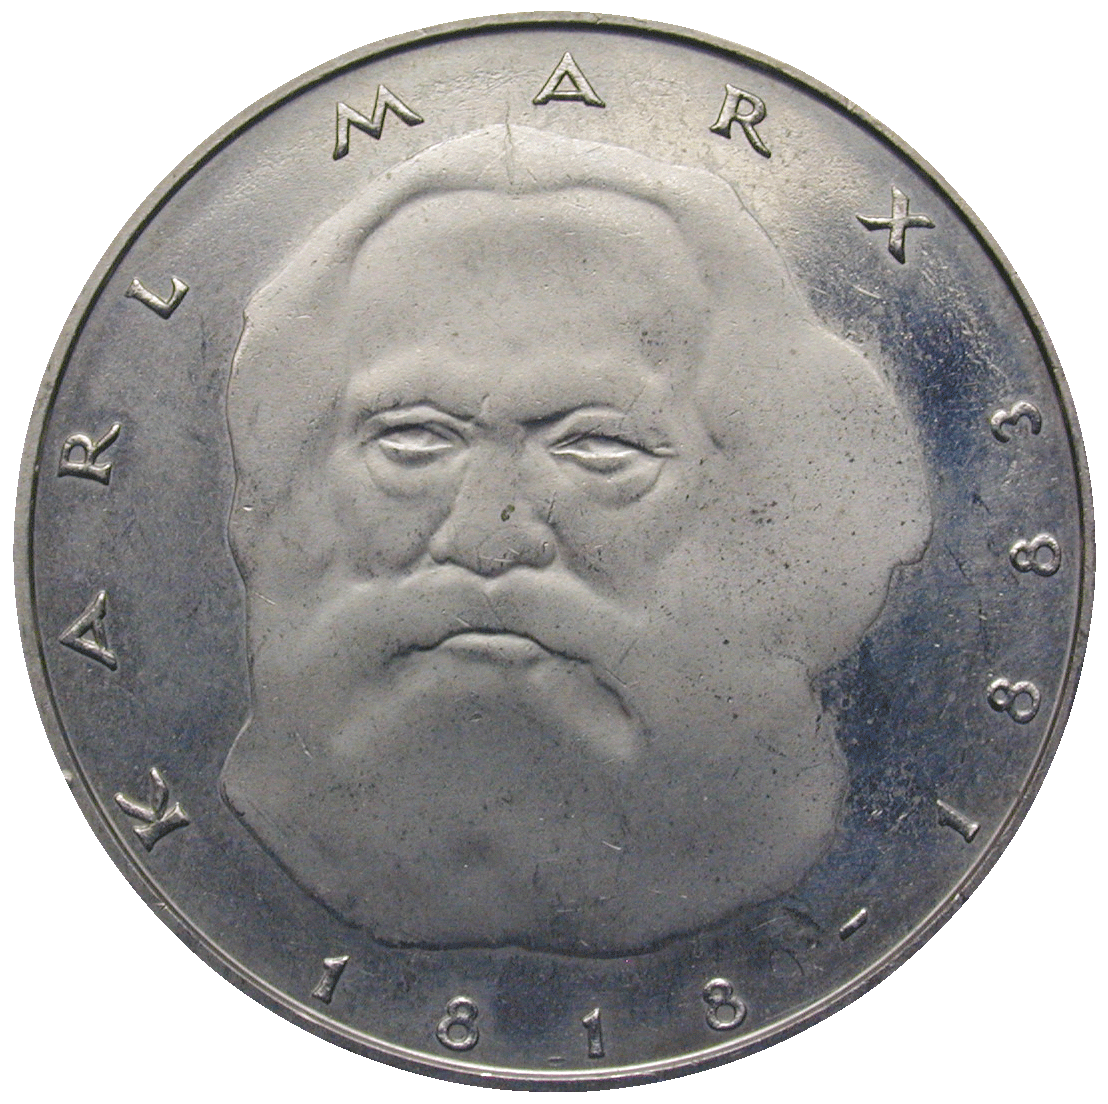 Federal Republic of Germany, 5 Deutsche Mark 1983 (reverse)